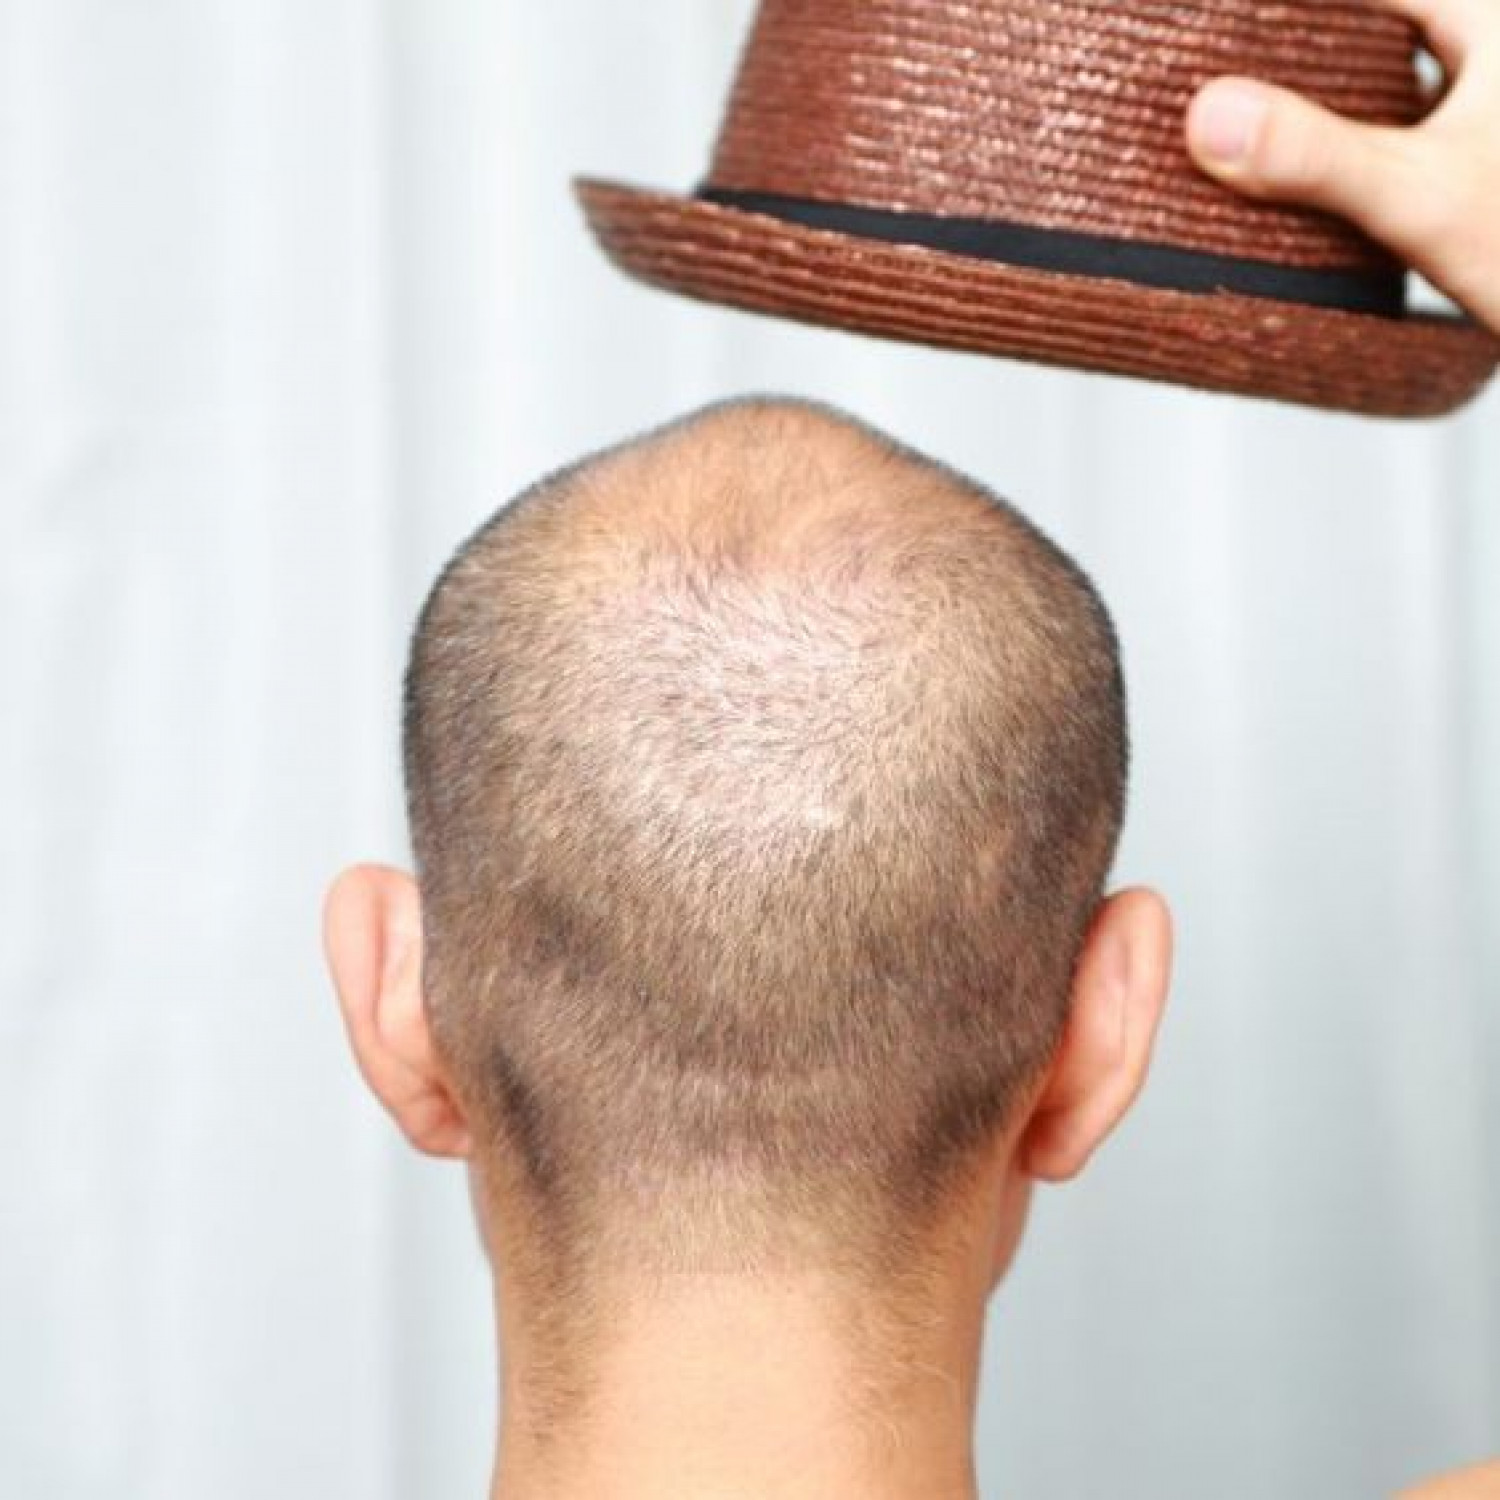 Symptoms of baldness and signs and treatment Infographic